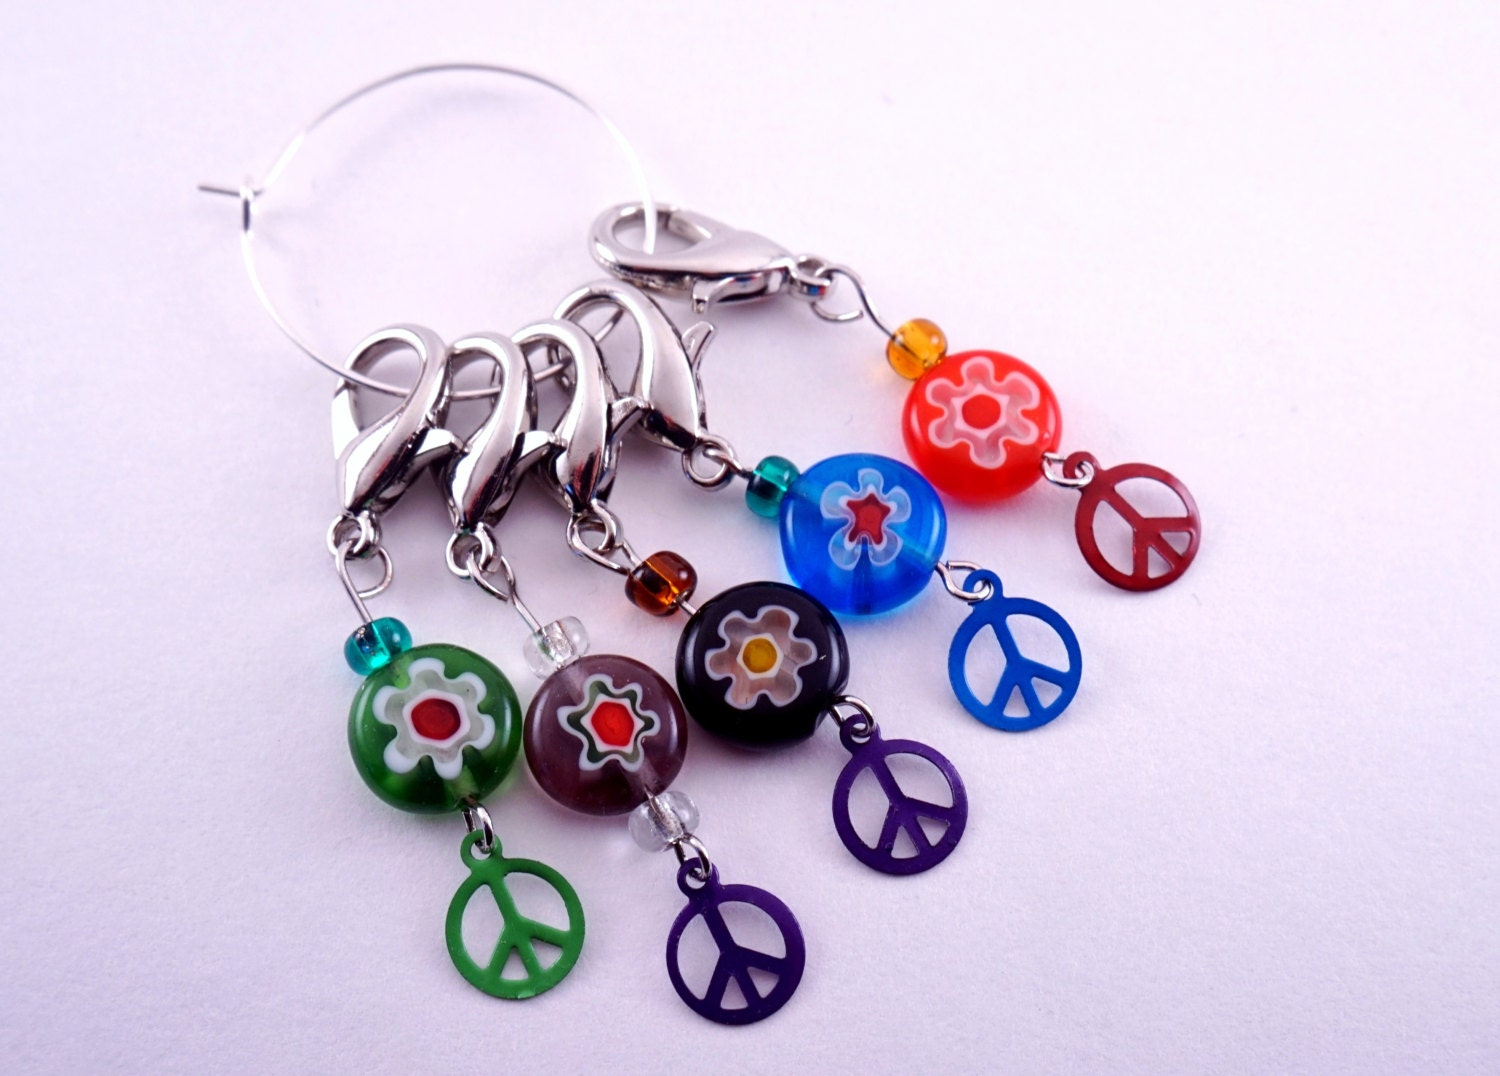 Decorative Knitting Stitch Markers : Stitch Markers Crochet Stitch Markers Knitting and Crochet